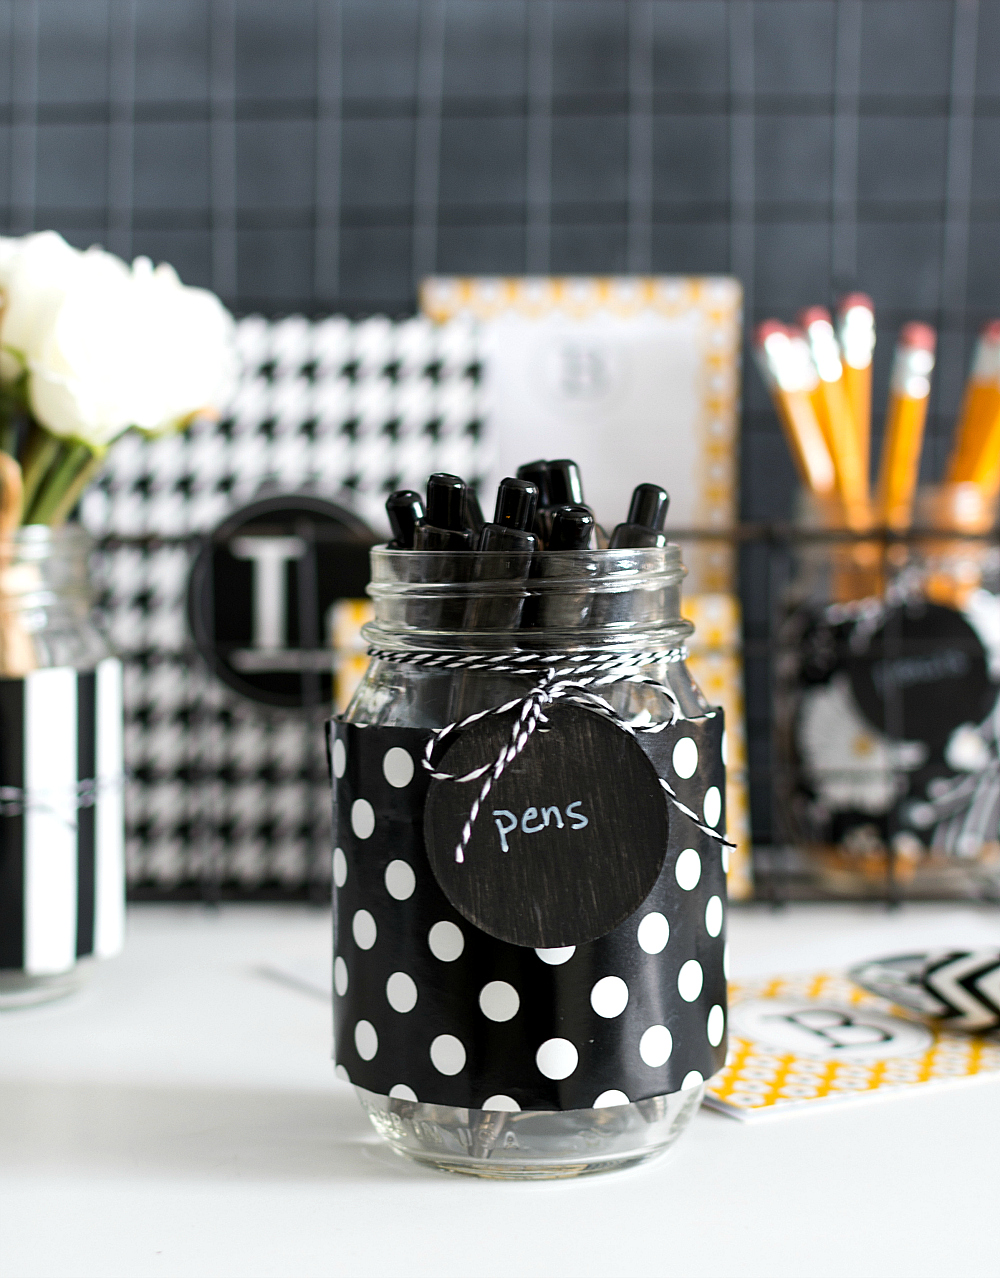 How To Organize Your Desk with Mason Jars